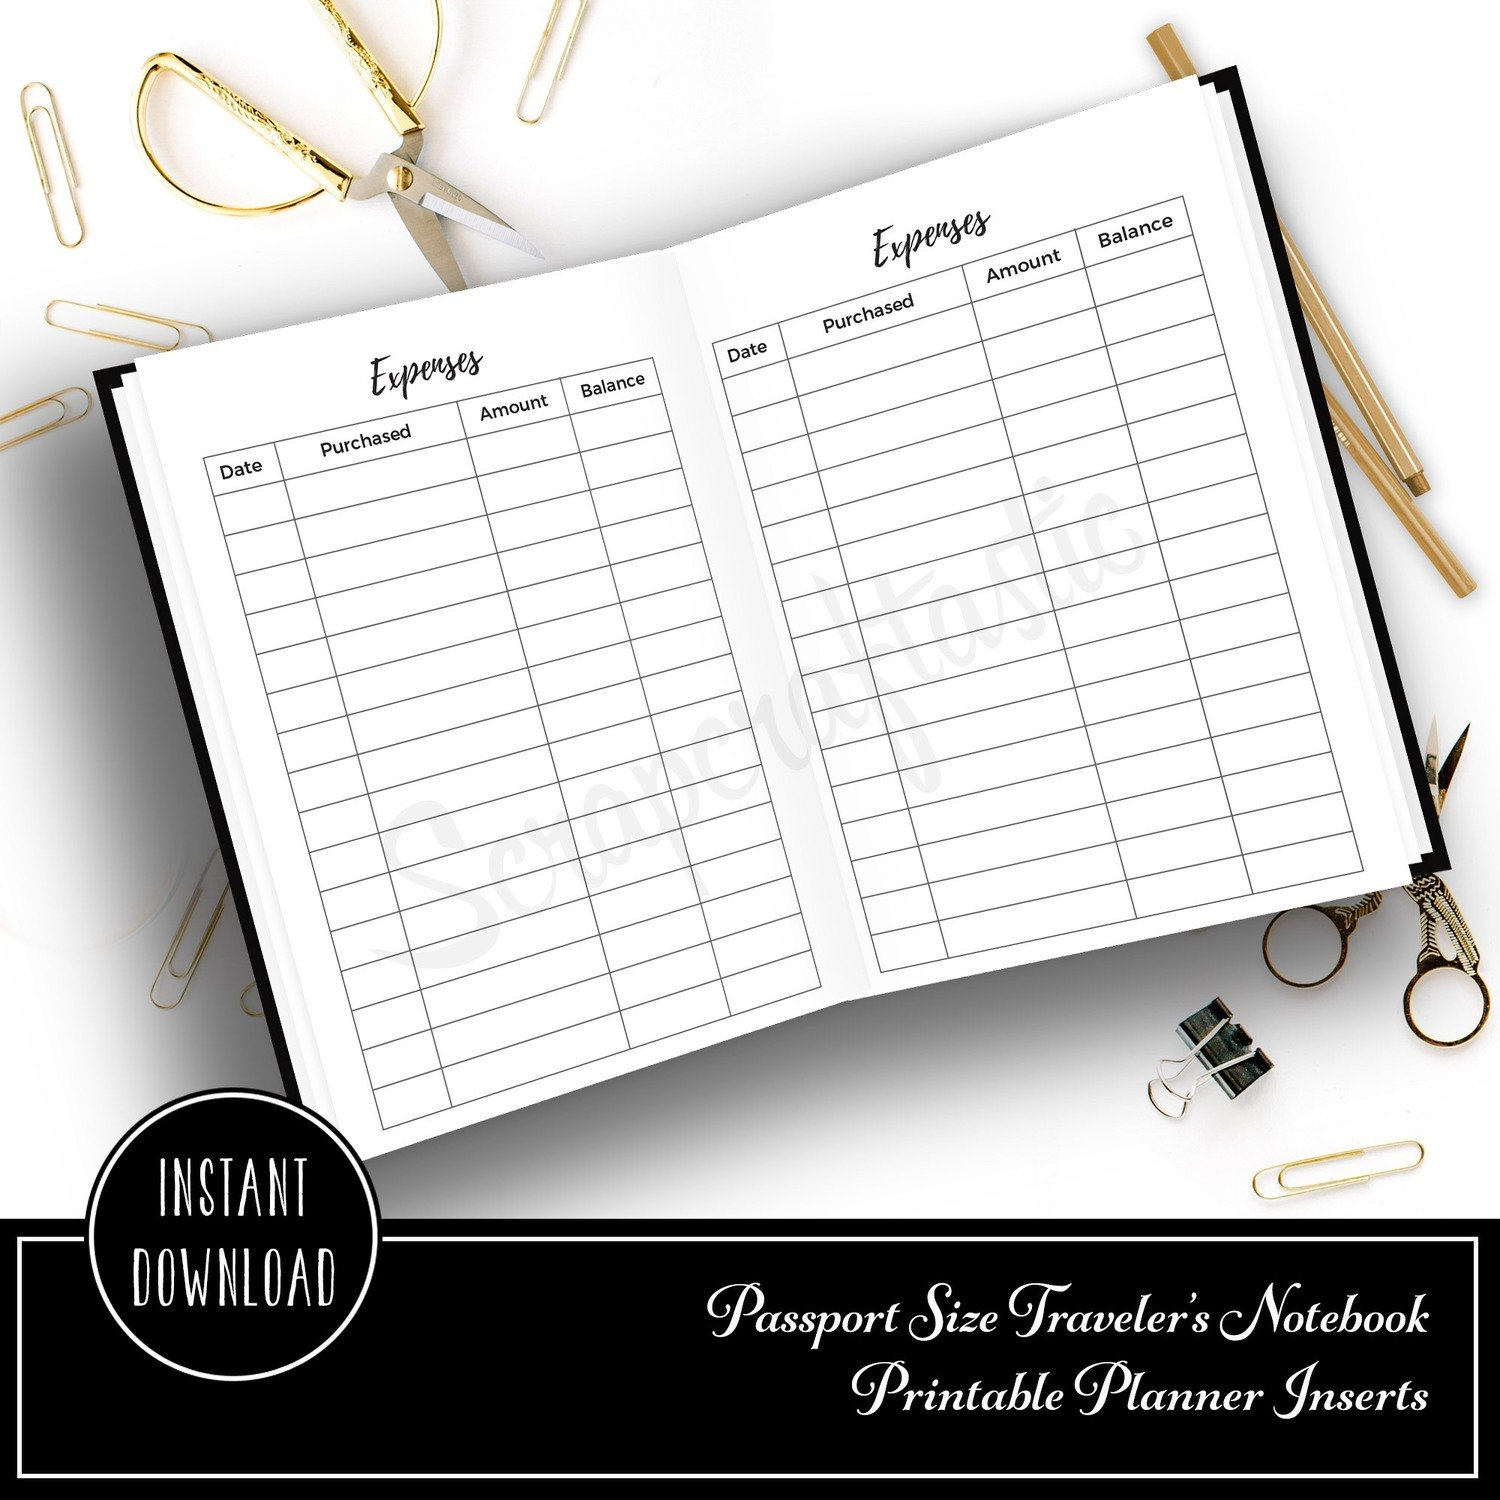 PASSPORT - Custom Expense Log Traveler's Notebook Printable Insert